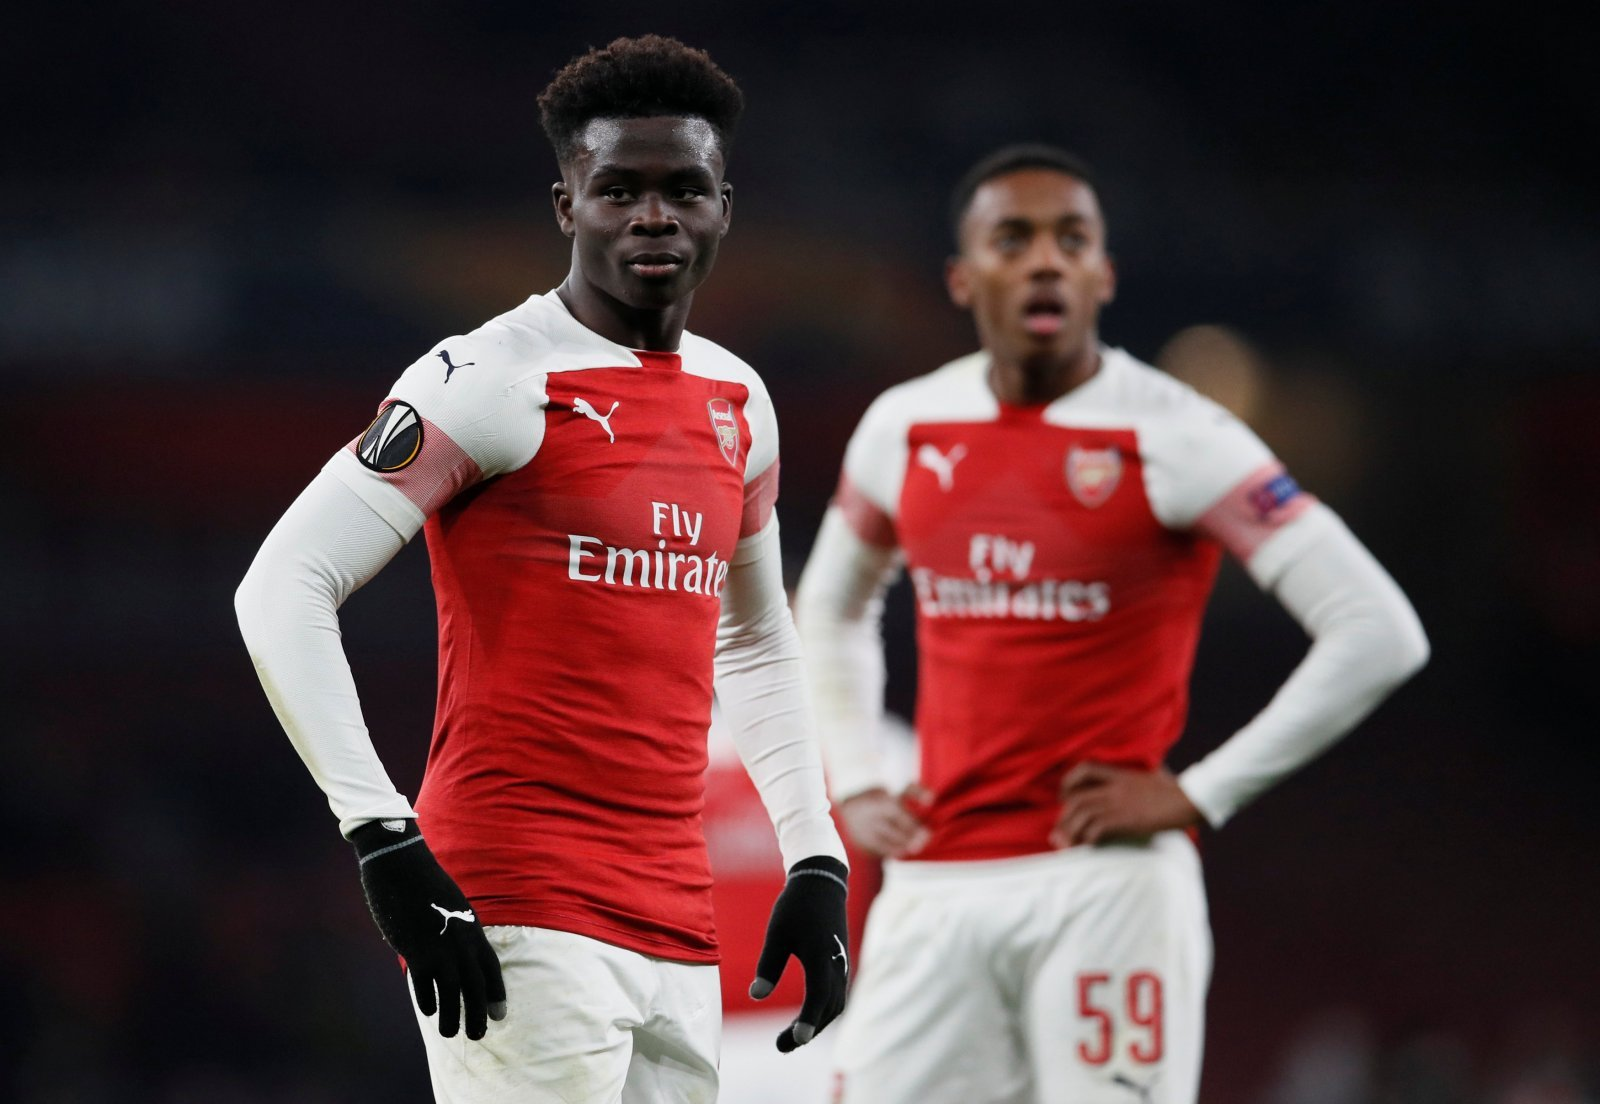 Arsenal: Fans praise youth player and want him to start this season